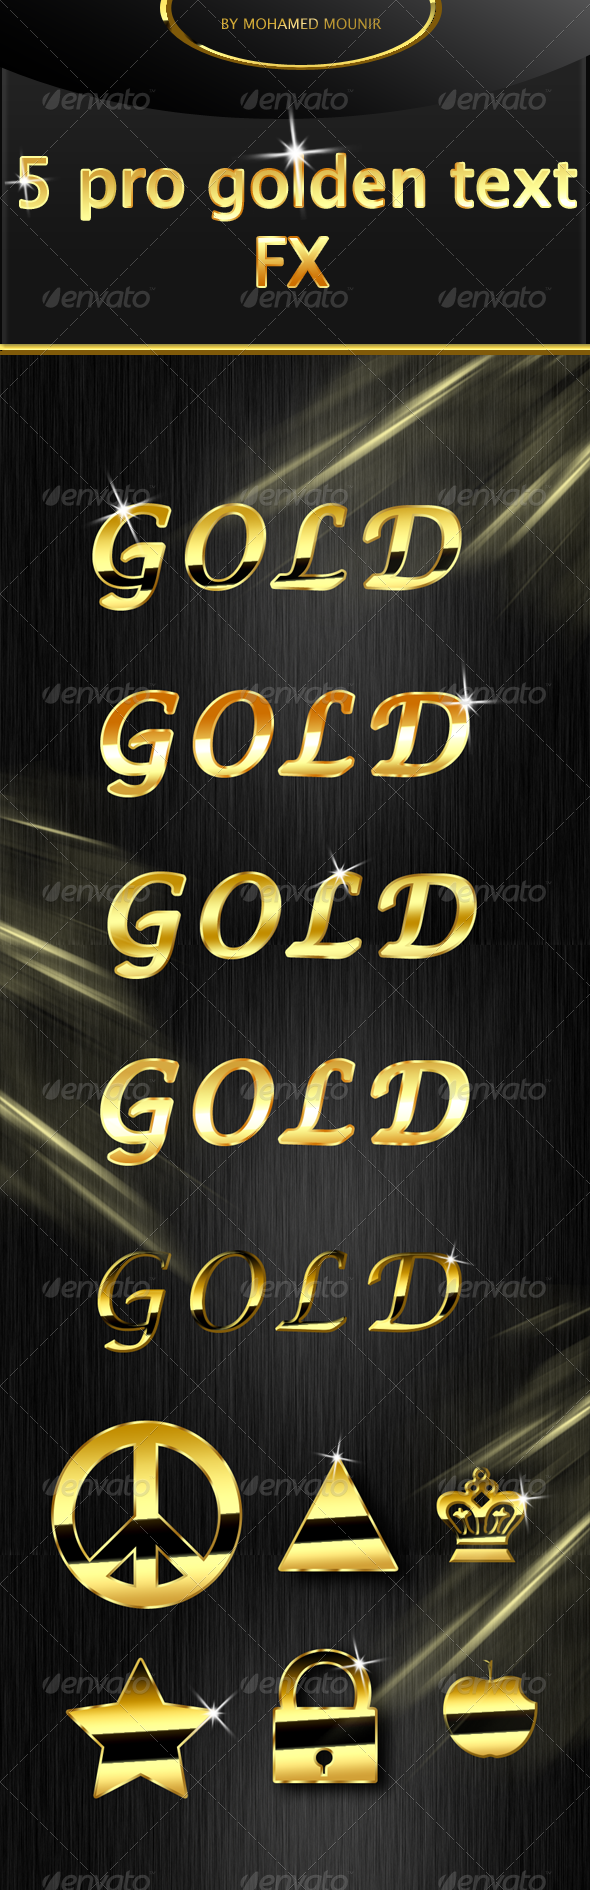 Gold Text Styles - Text Effects Actions